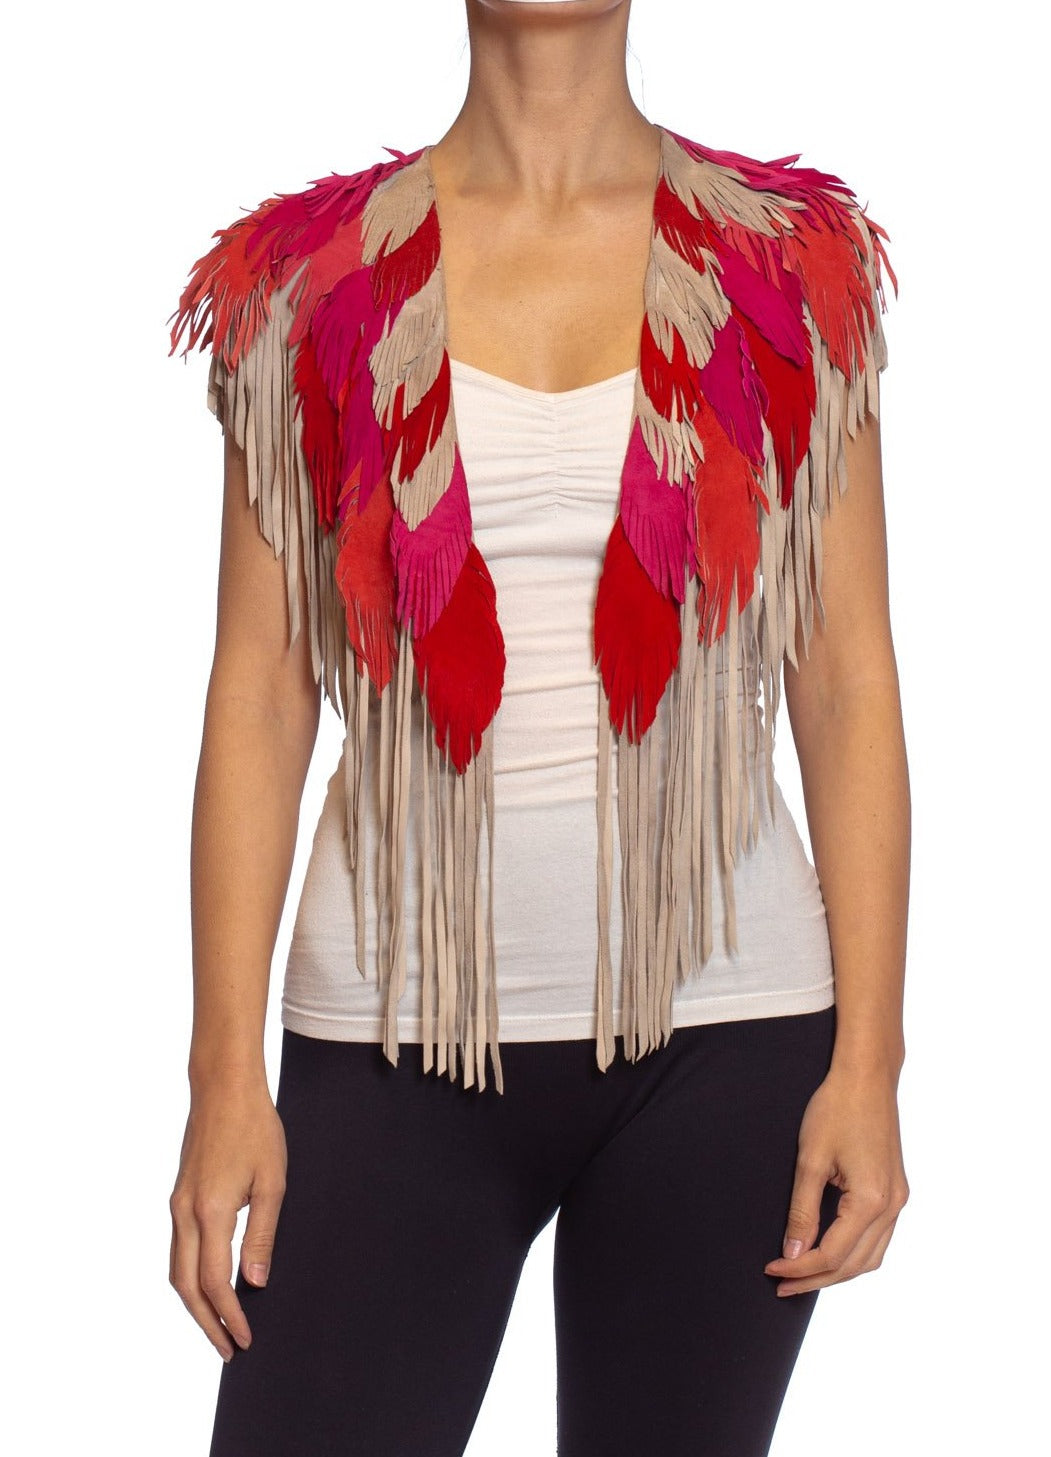 MORPHEW COLLECTION Pink & Sand Suede Feather Leather Cape